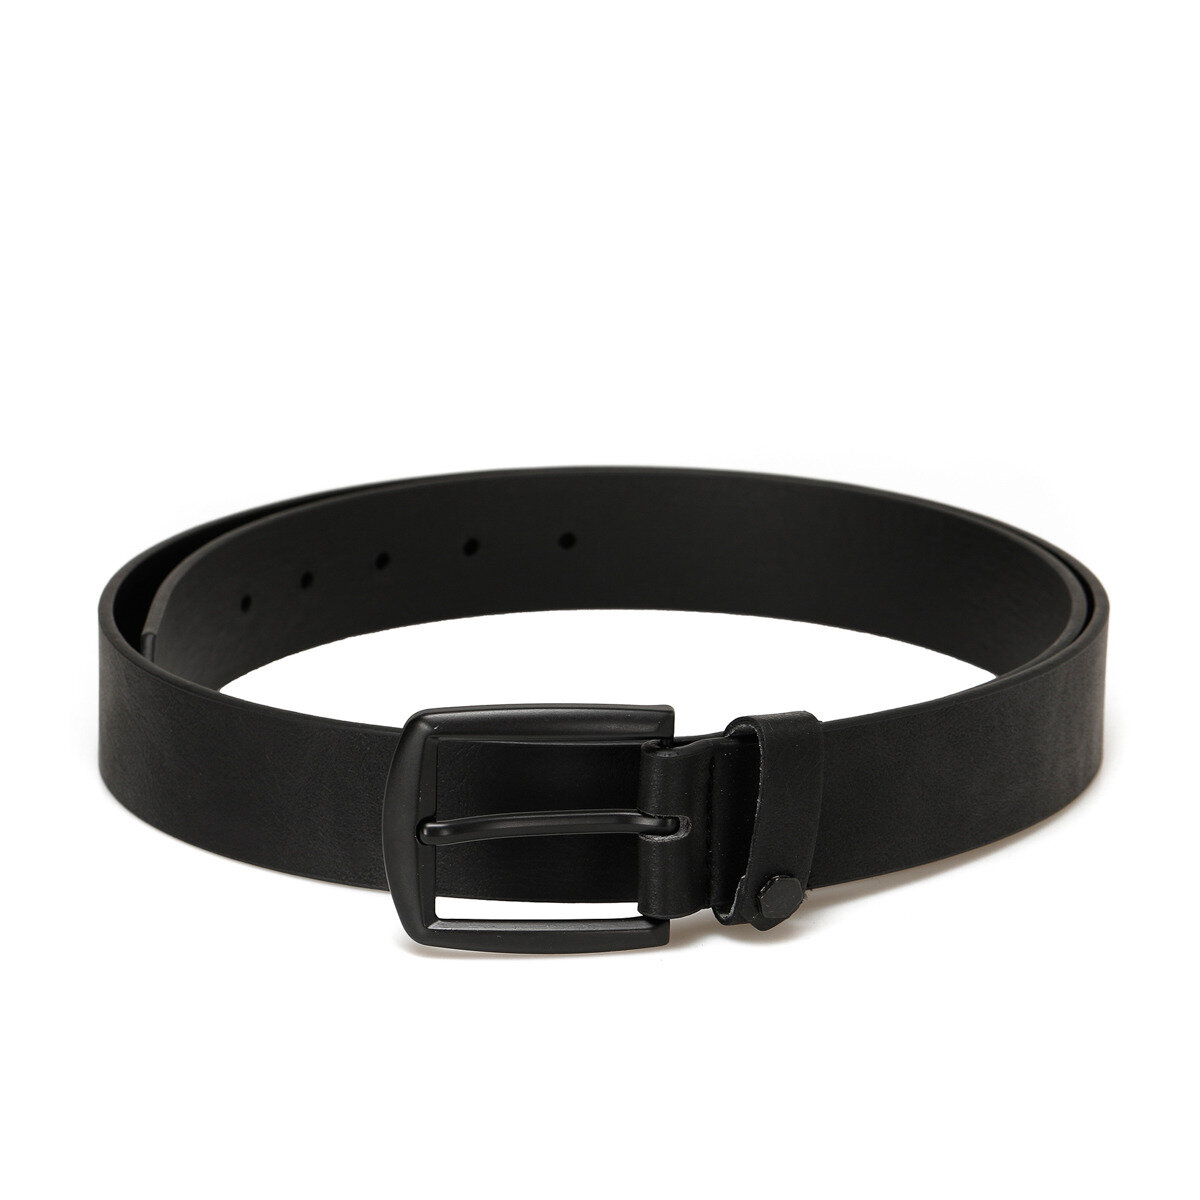 FLO 20M PR CO BLACK Black Male Belt Oxide